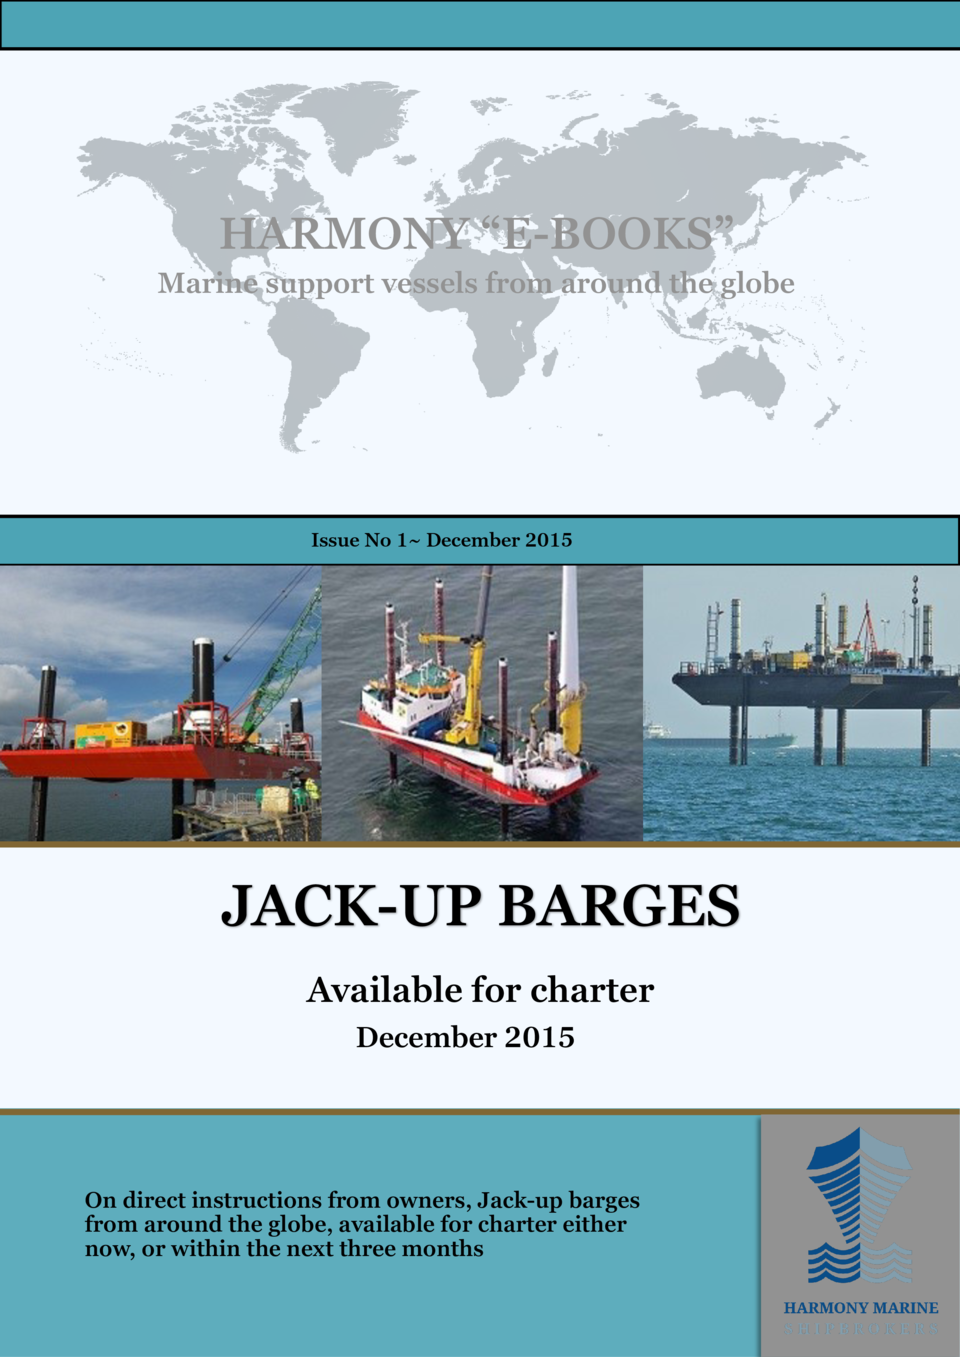 HARMONY    E-BOOKS    Marine support vessels from around the globe  Issue No 1  December 2015  JACK-UP BARGES Available fo...